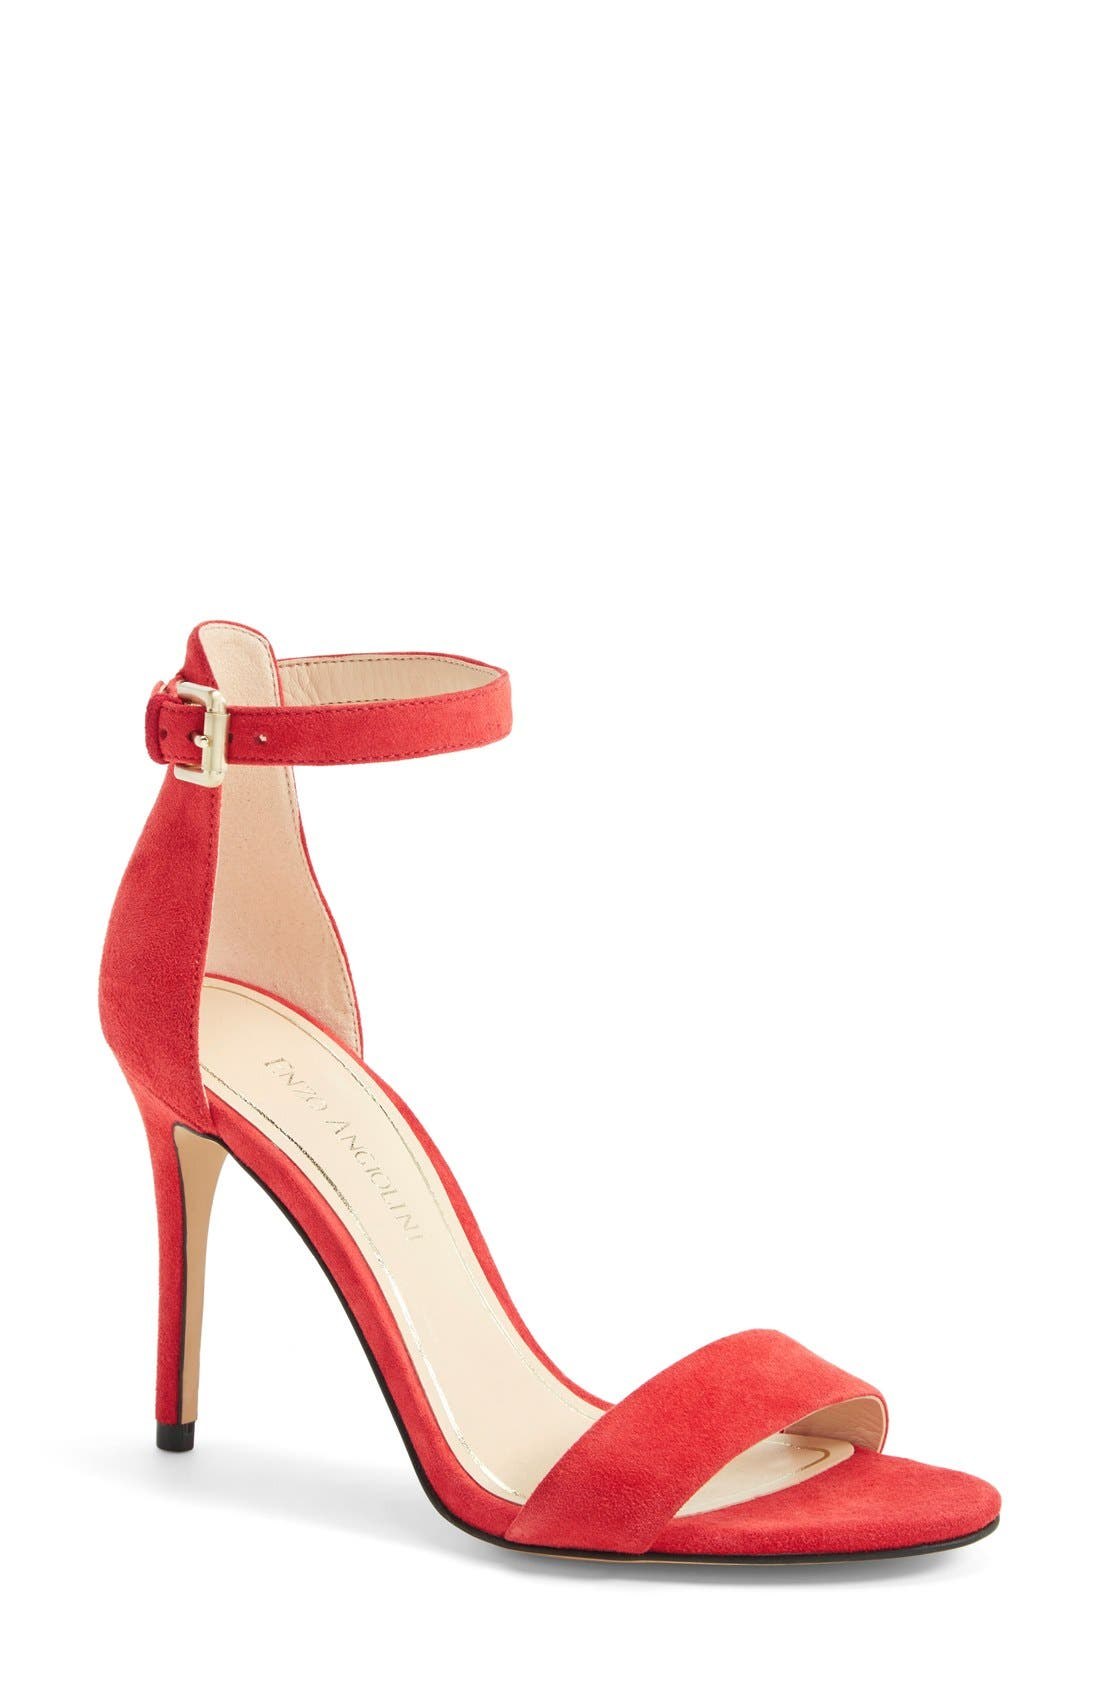 'Manna' Ankle Strap Sandal,                         Main,                         color, Cherry Suede